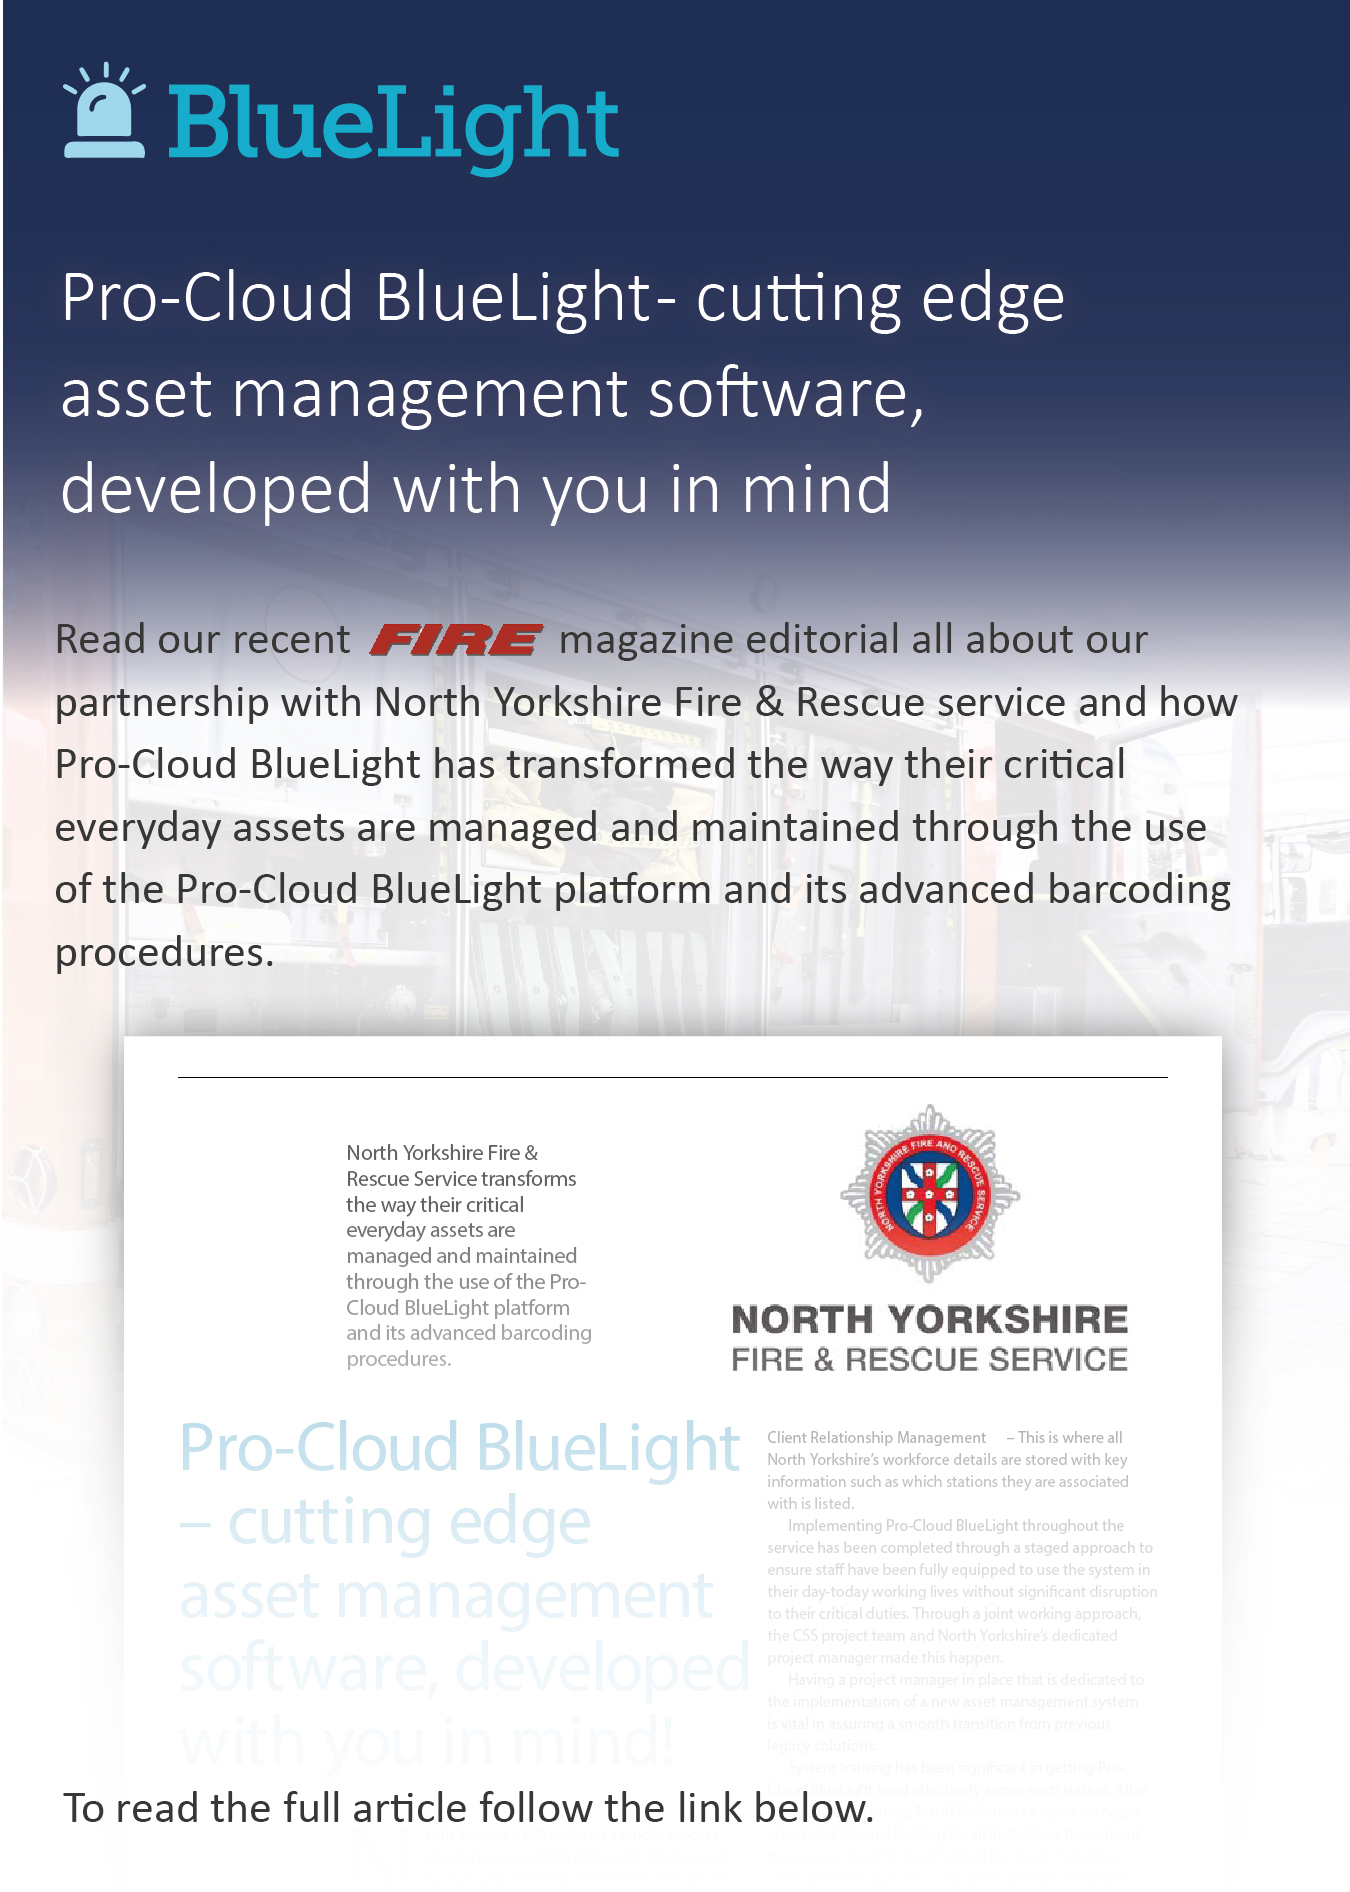 Read our recent FIRE magazine editorial all about our partnership with North Yorkshire Fire & Rescue service and how Pro-Cloud BlueLight has transformed the way their critical everyday assets are managed and maintained through the use of the Pro-Cloud BlueLight platform and its advanced barcoding procedures.